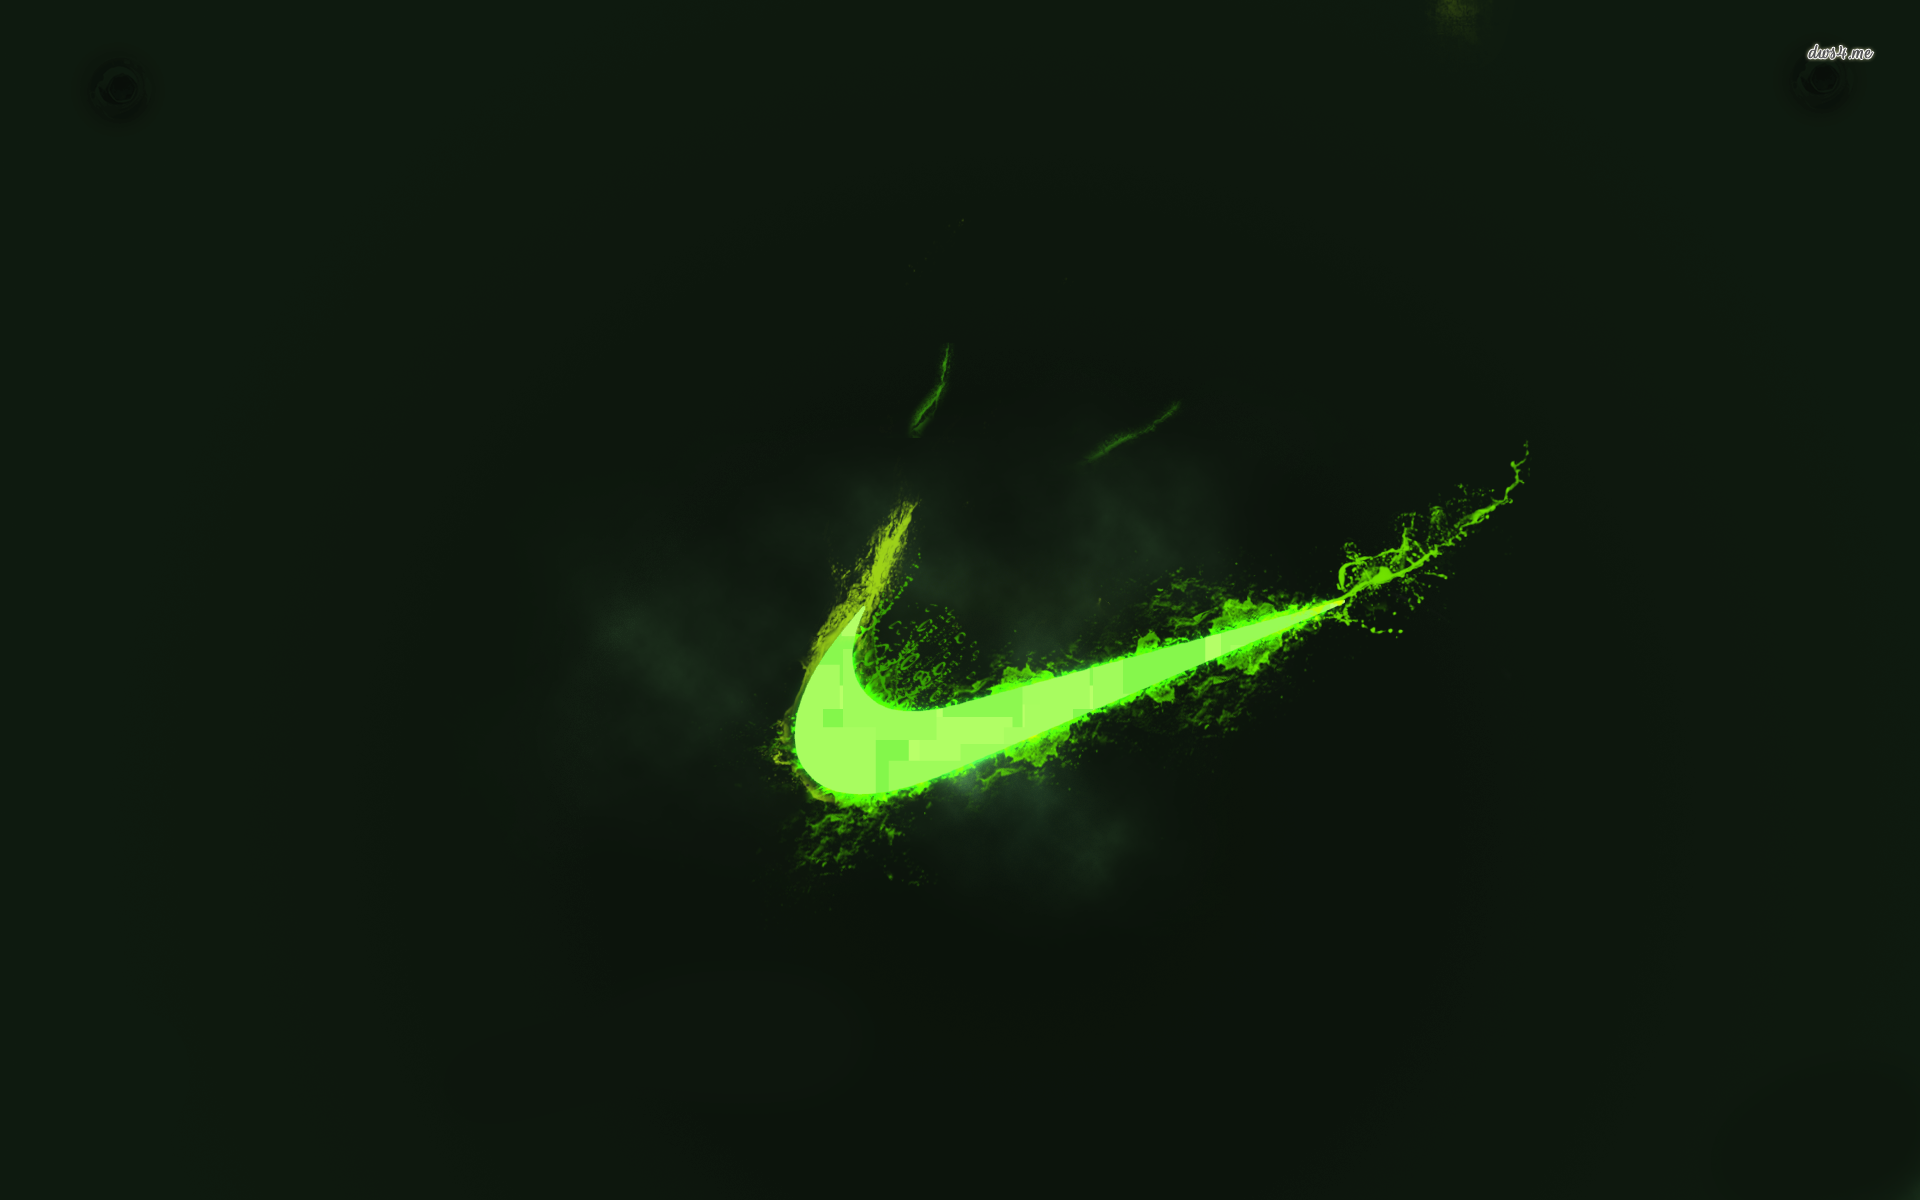 Neon Green Nike Logo Wallpaper Hd For Desktop cute Wallpapers 1920x1200